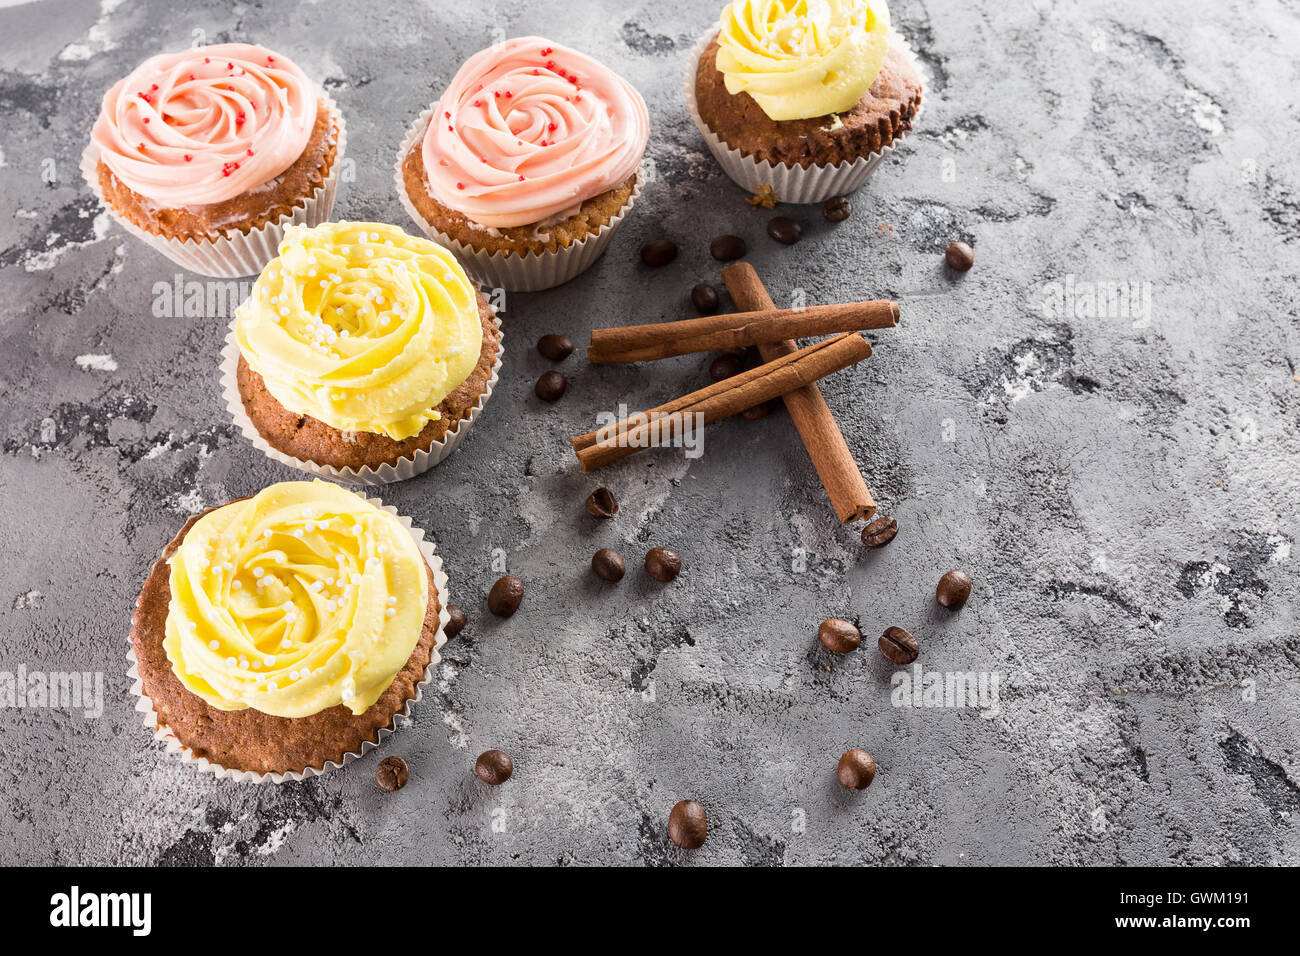 cupcakes with cream on grey stone background. - Stock Image